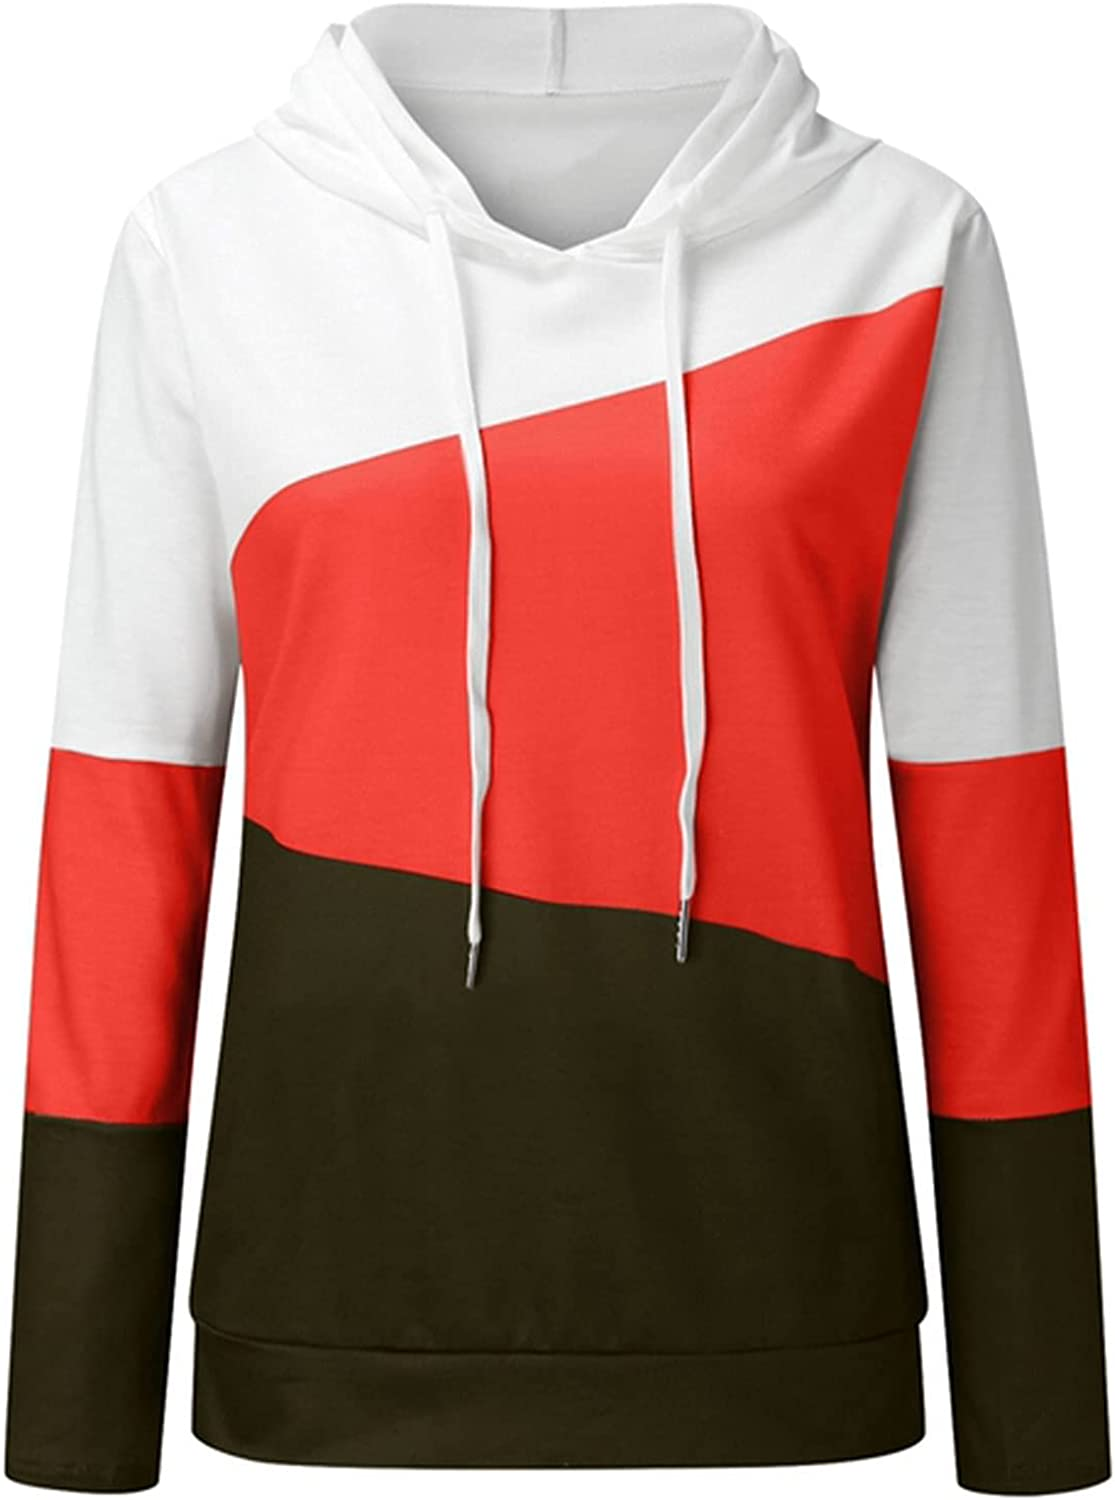 Women's New Free Shipping Fashion Splicing Ranking TOP4 Printing L Hoodies Lightweight Pullover